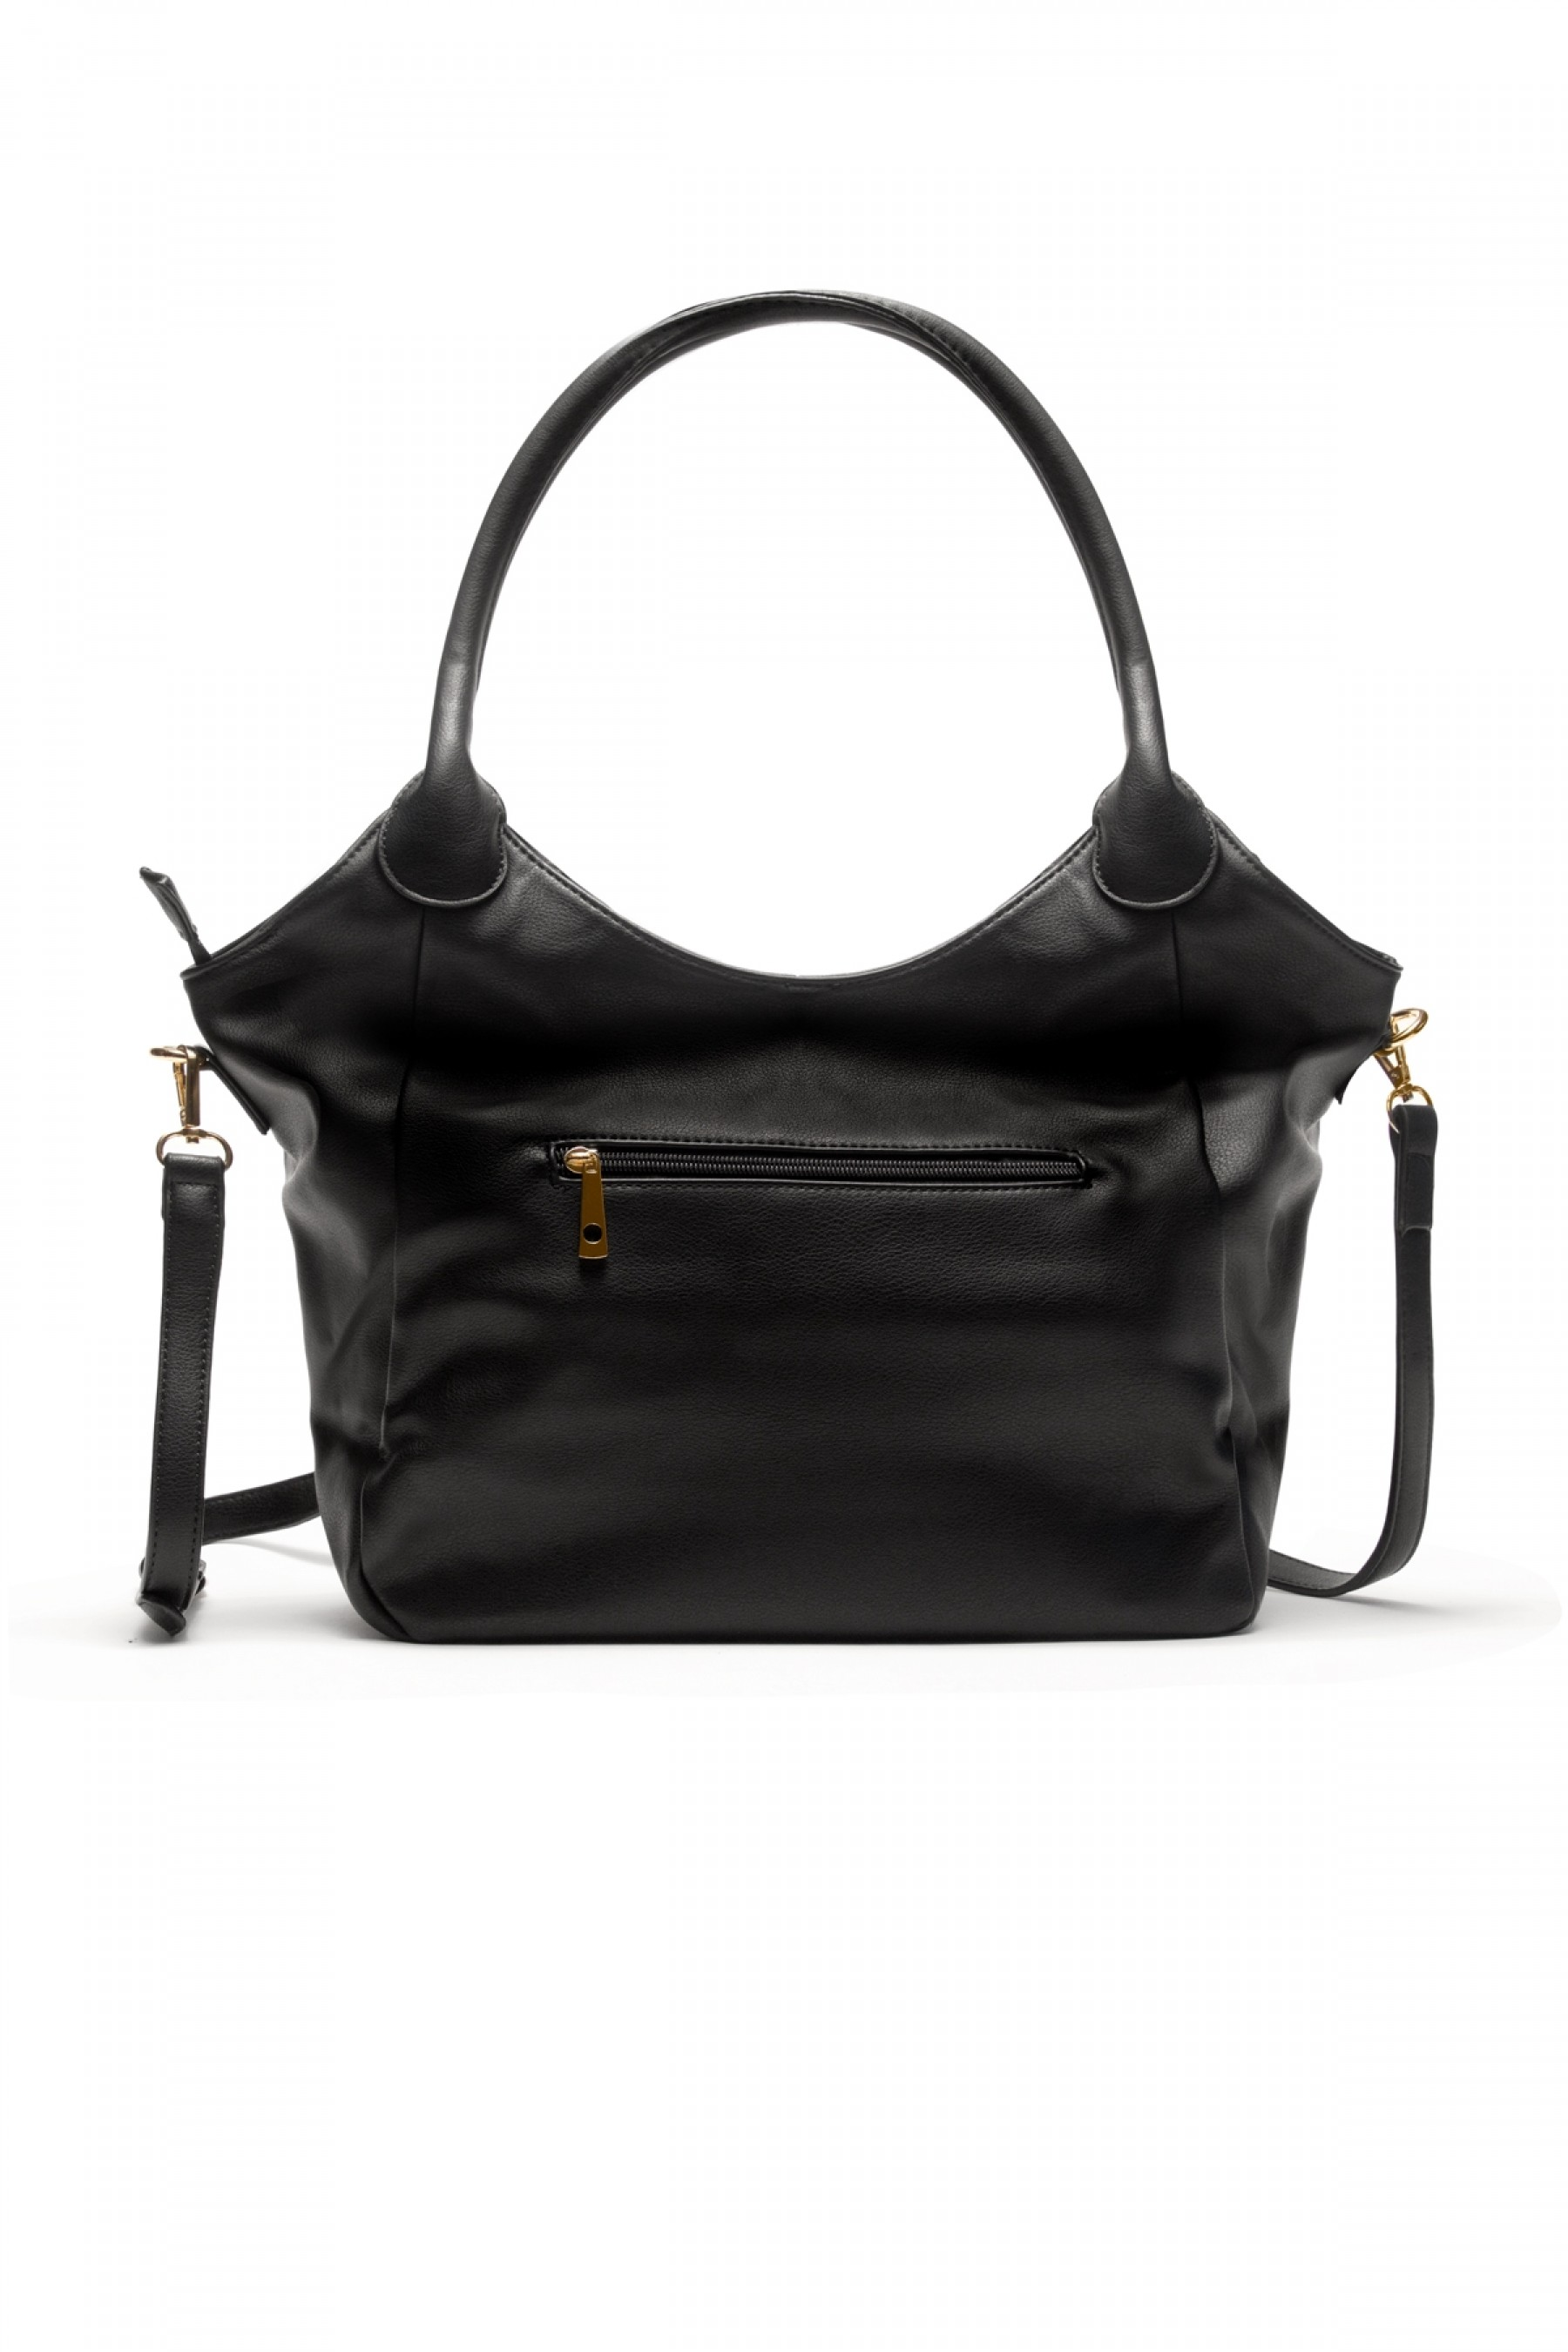 SLC-662661- Classic Simple Top Handle Bag (Black)